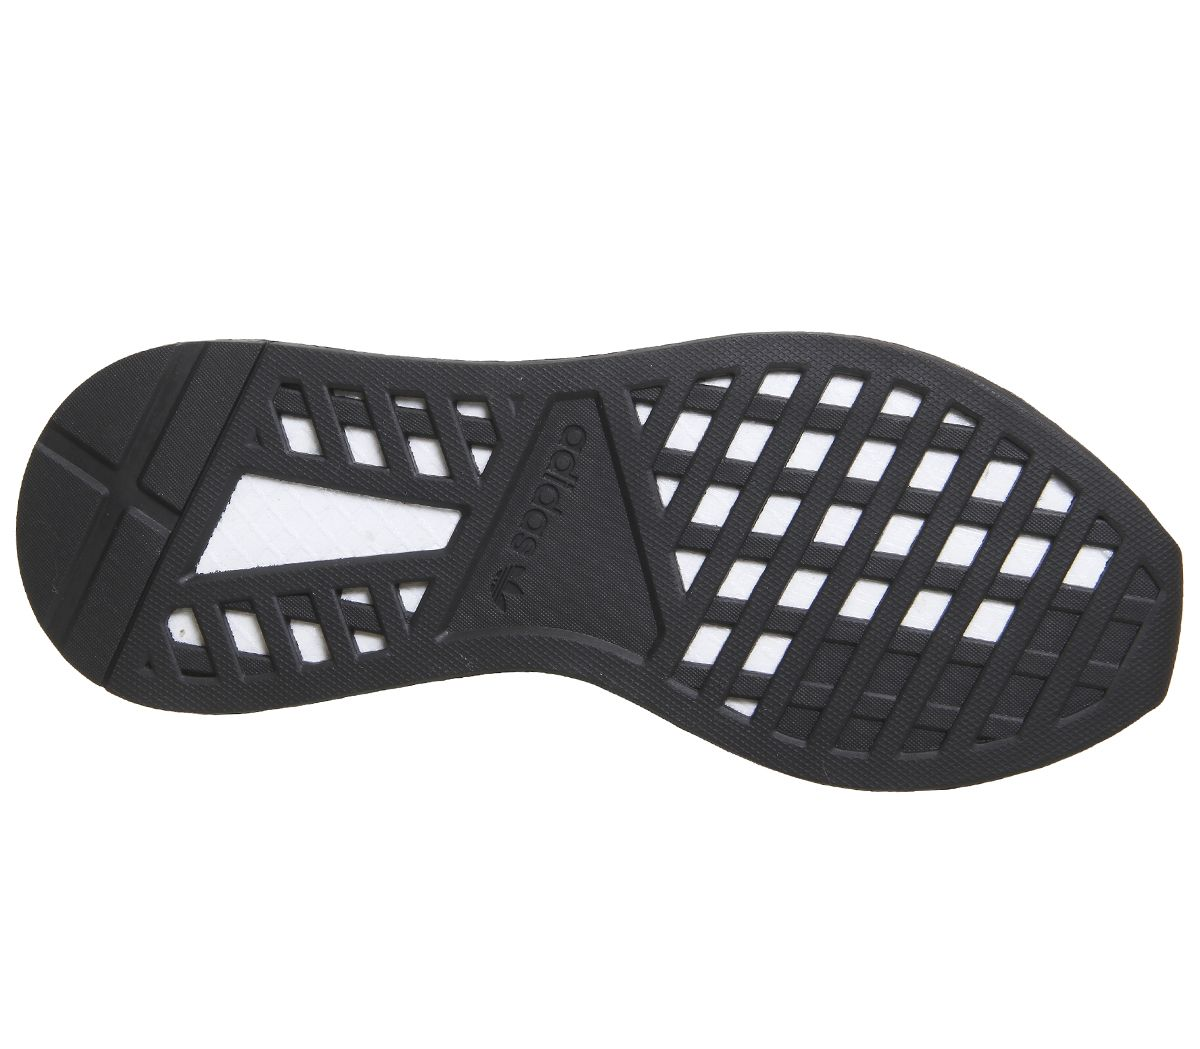 ae141d9617605 adidas Originals Trainers Deerupt Runner CQ2626 Black White UK 9. About  this product. Picture 1 of 5  Picture 2 of 5  Picture 3 of 5  Picture 4 of 5